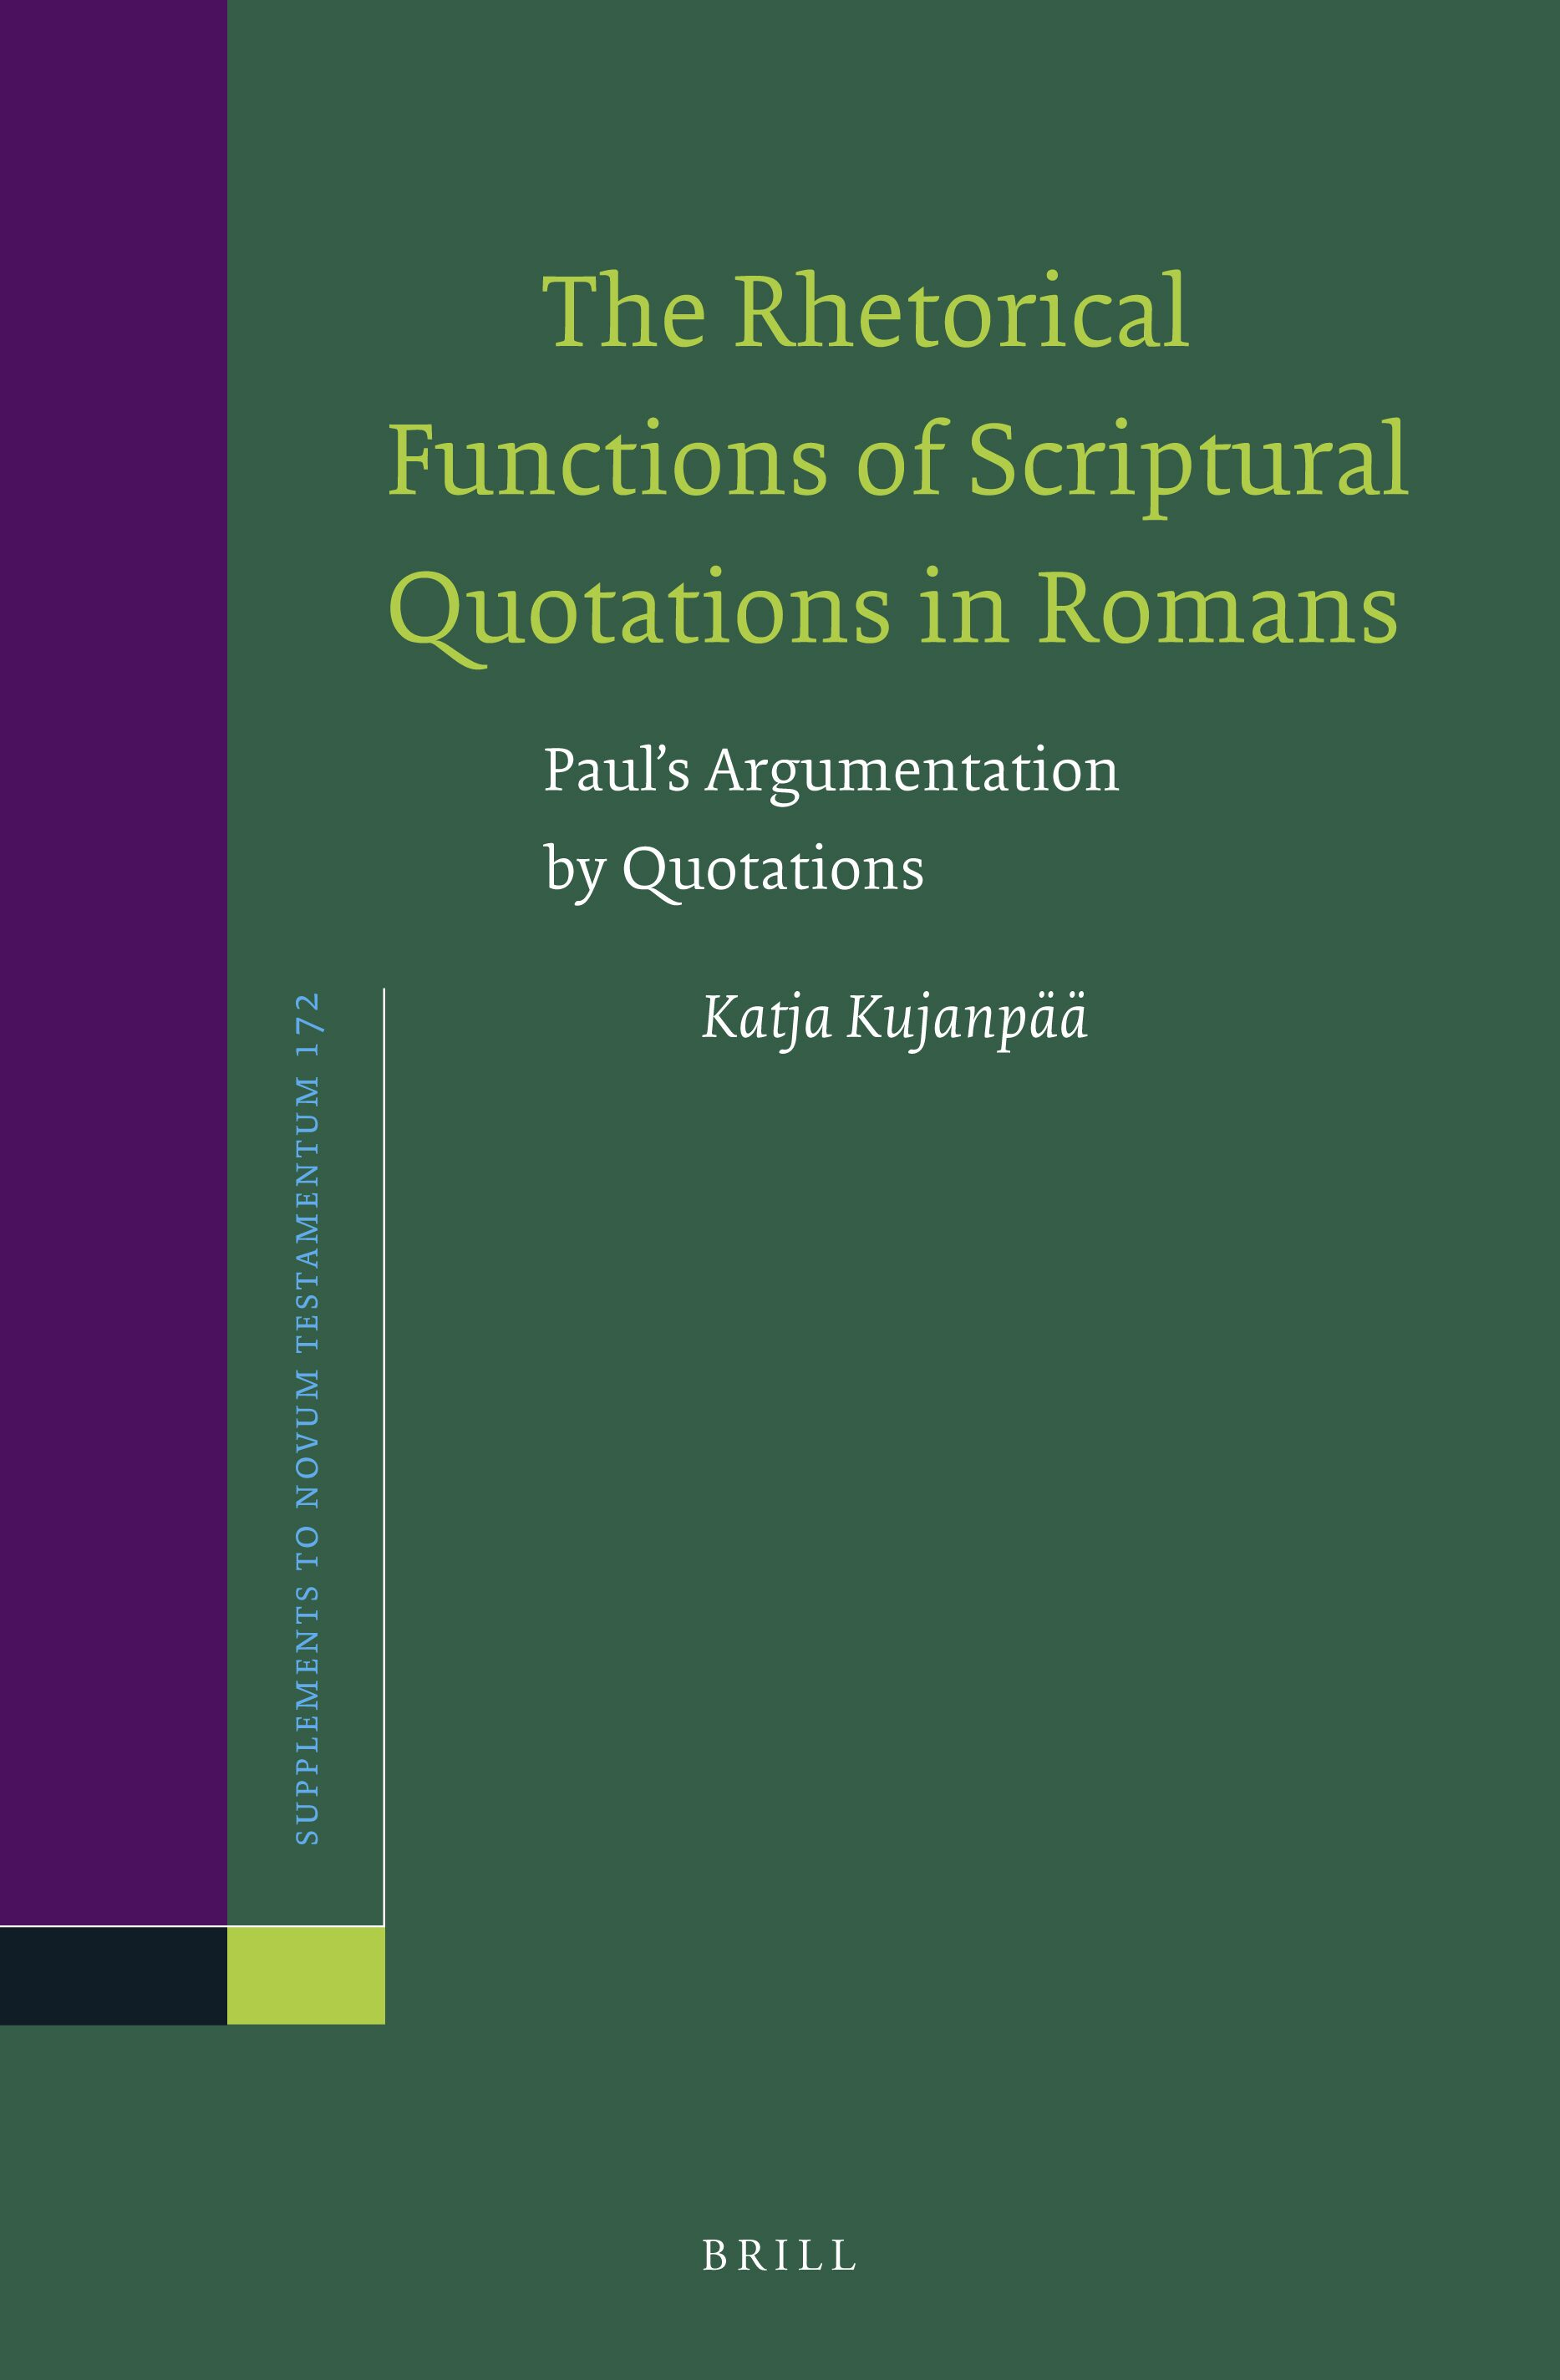 The Rhetorical Functions Of Scriptural Quotations In Romans